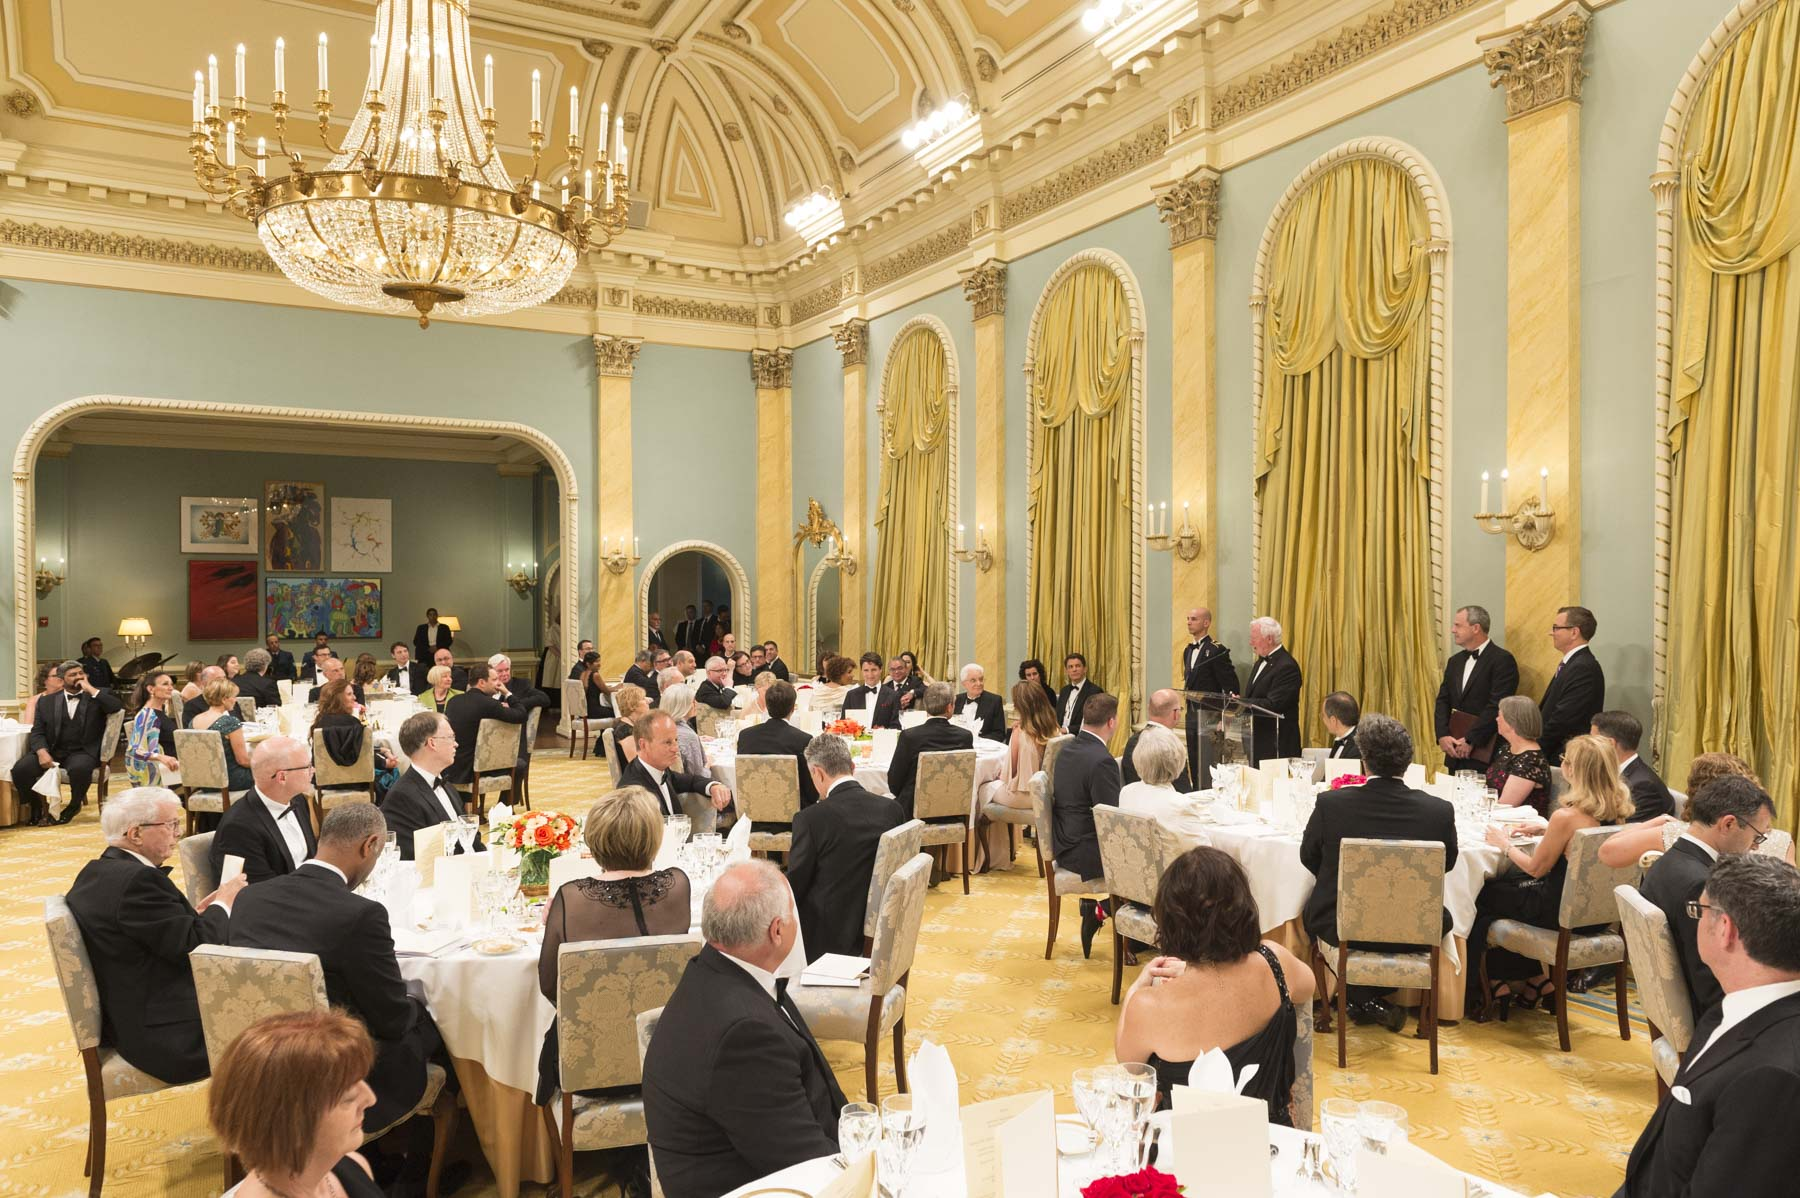 The State dinner took place in the Ballroom.